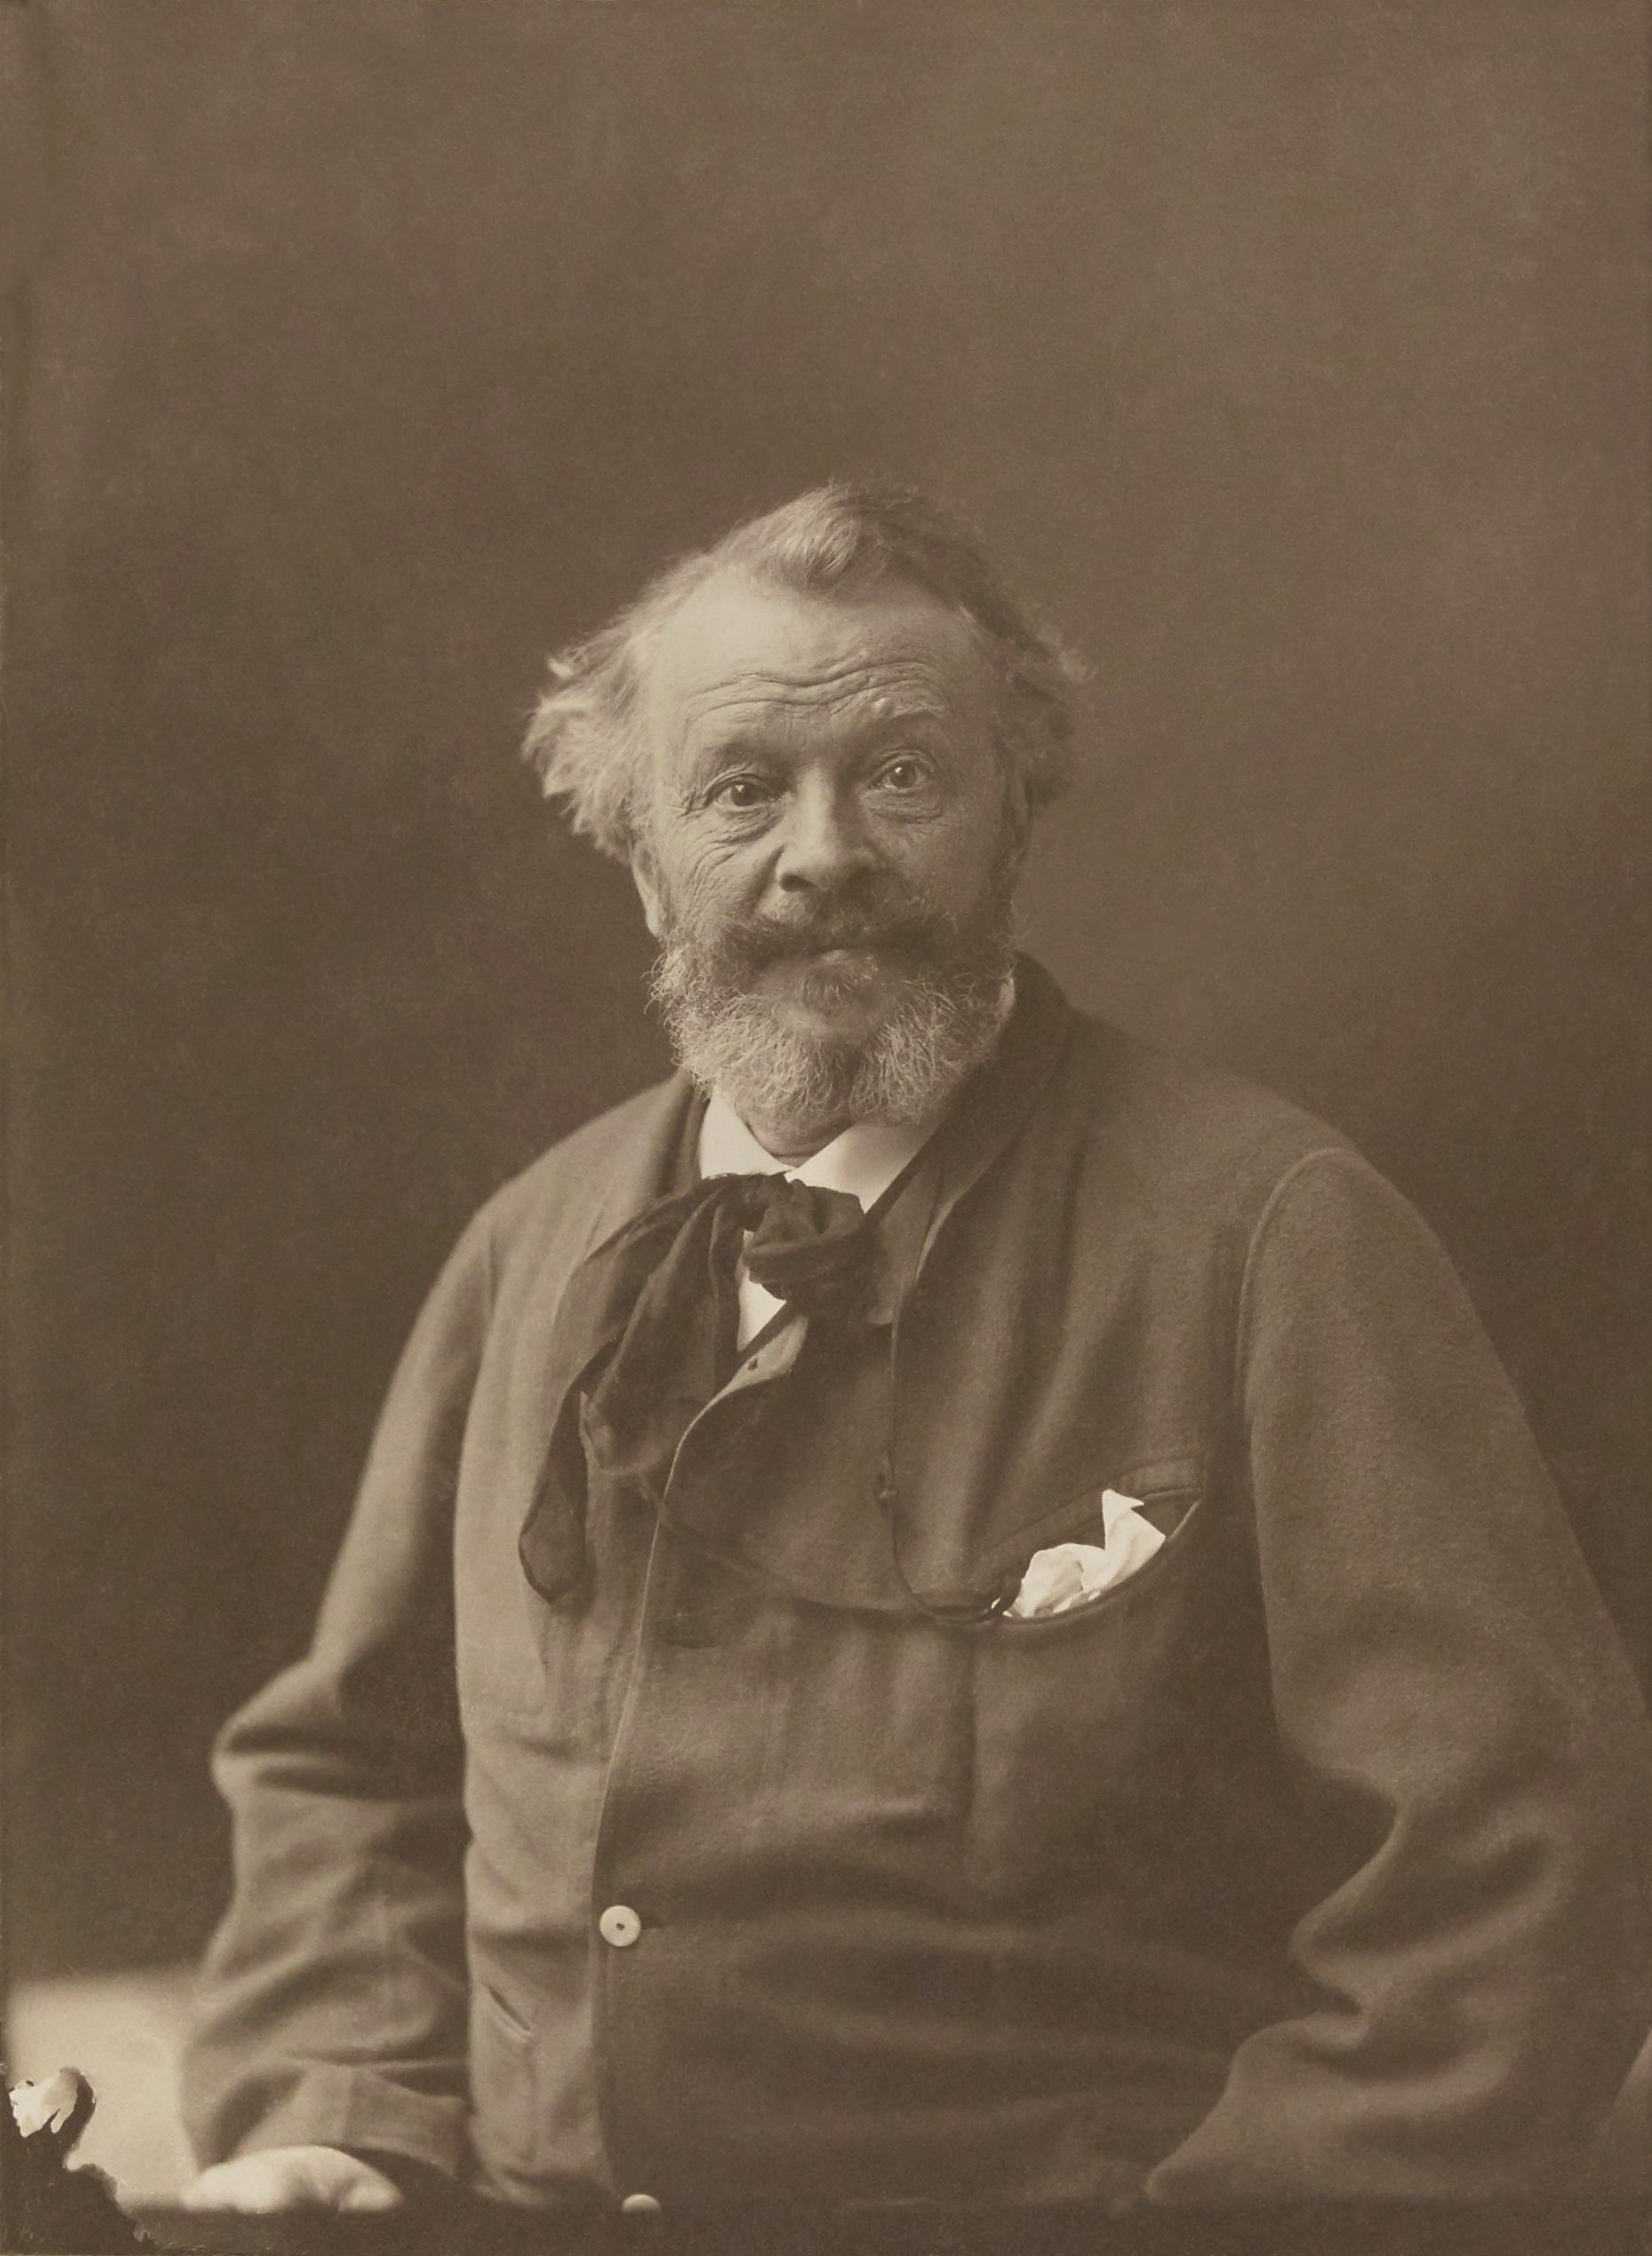 Image of Nadar from Wikidata